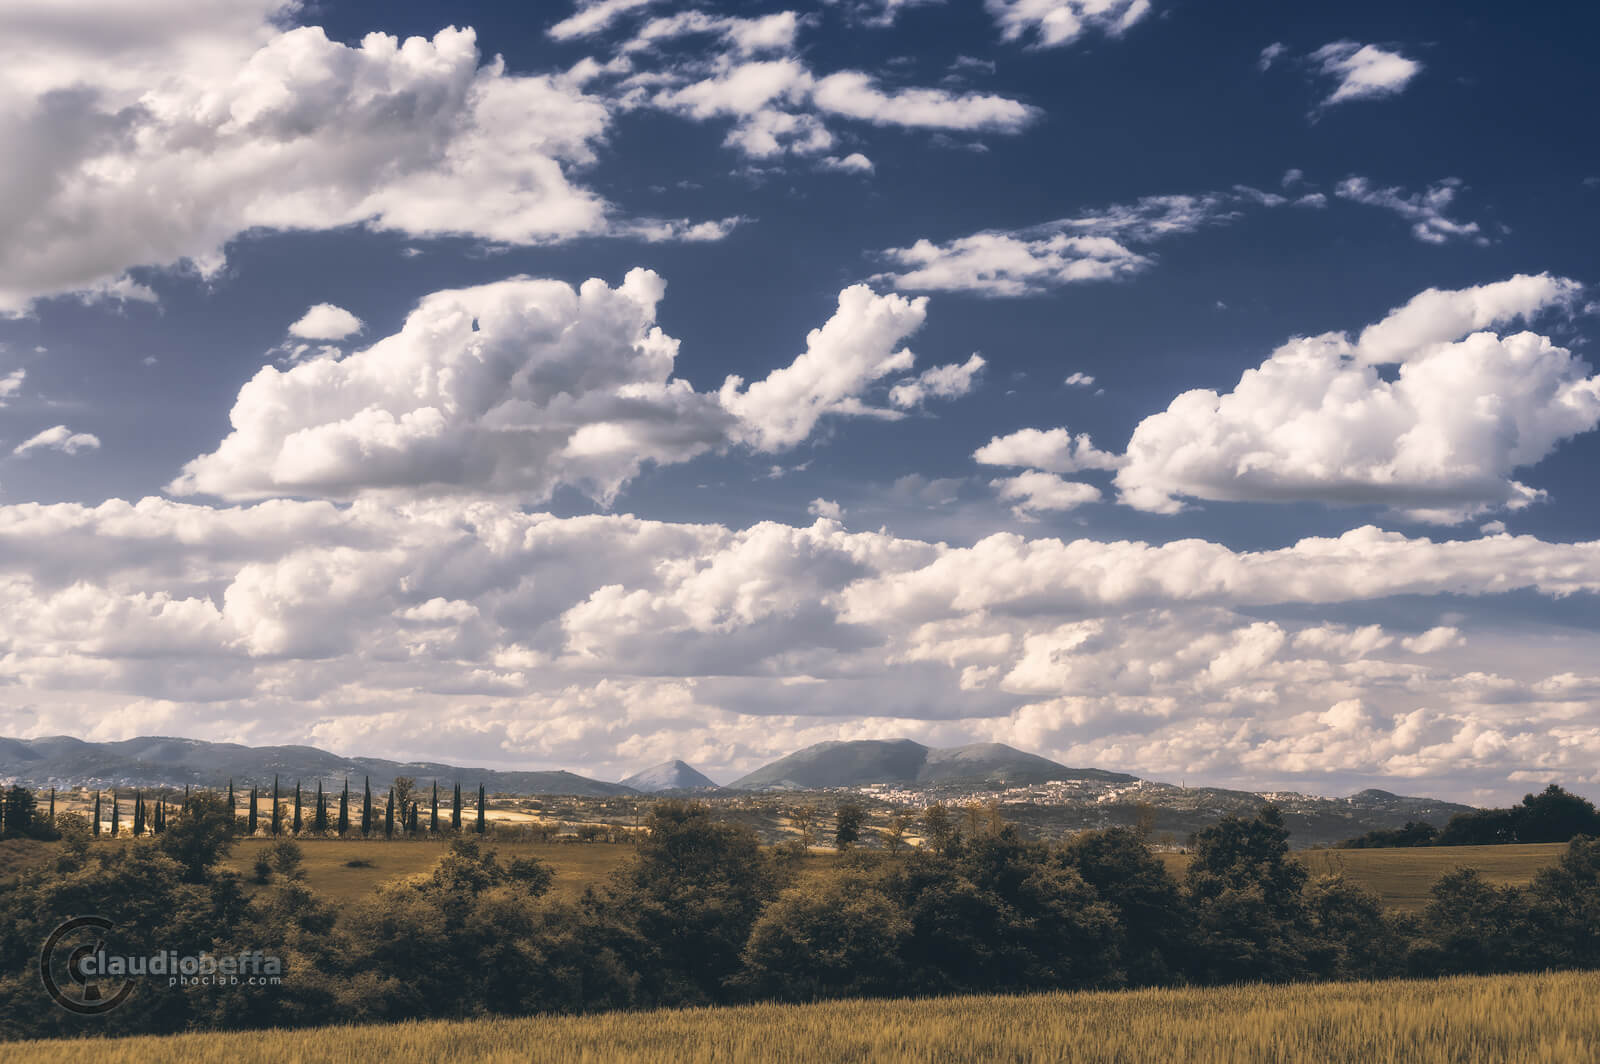 layers of beauty, countryside, landscape, hills, trees, mountains, sky, clouds, umbria, italy